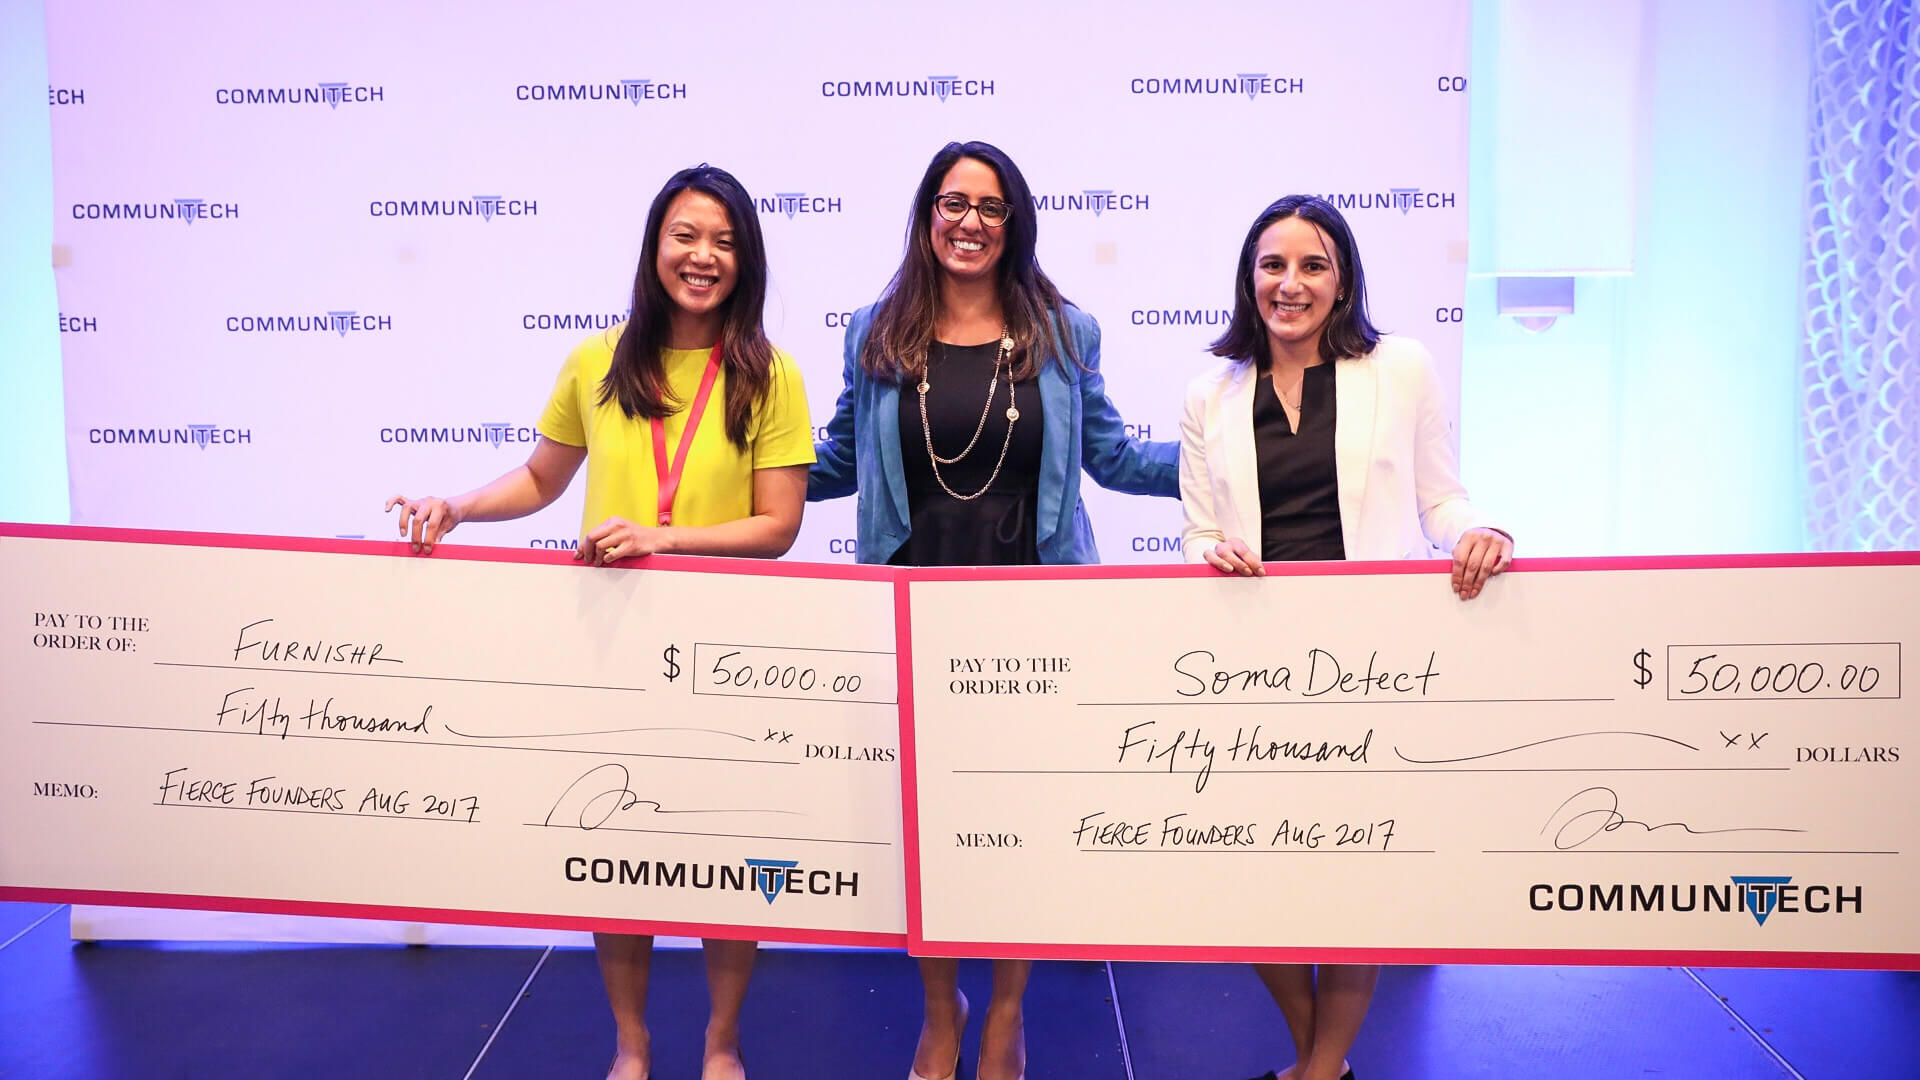 Furnishr and SomaDetect beat out 18 startups with their pitches on Thursday.